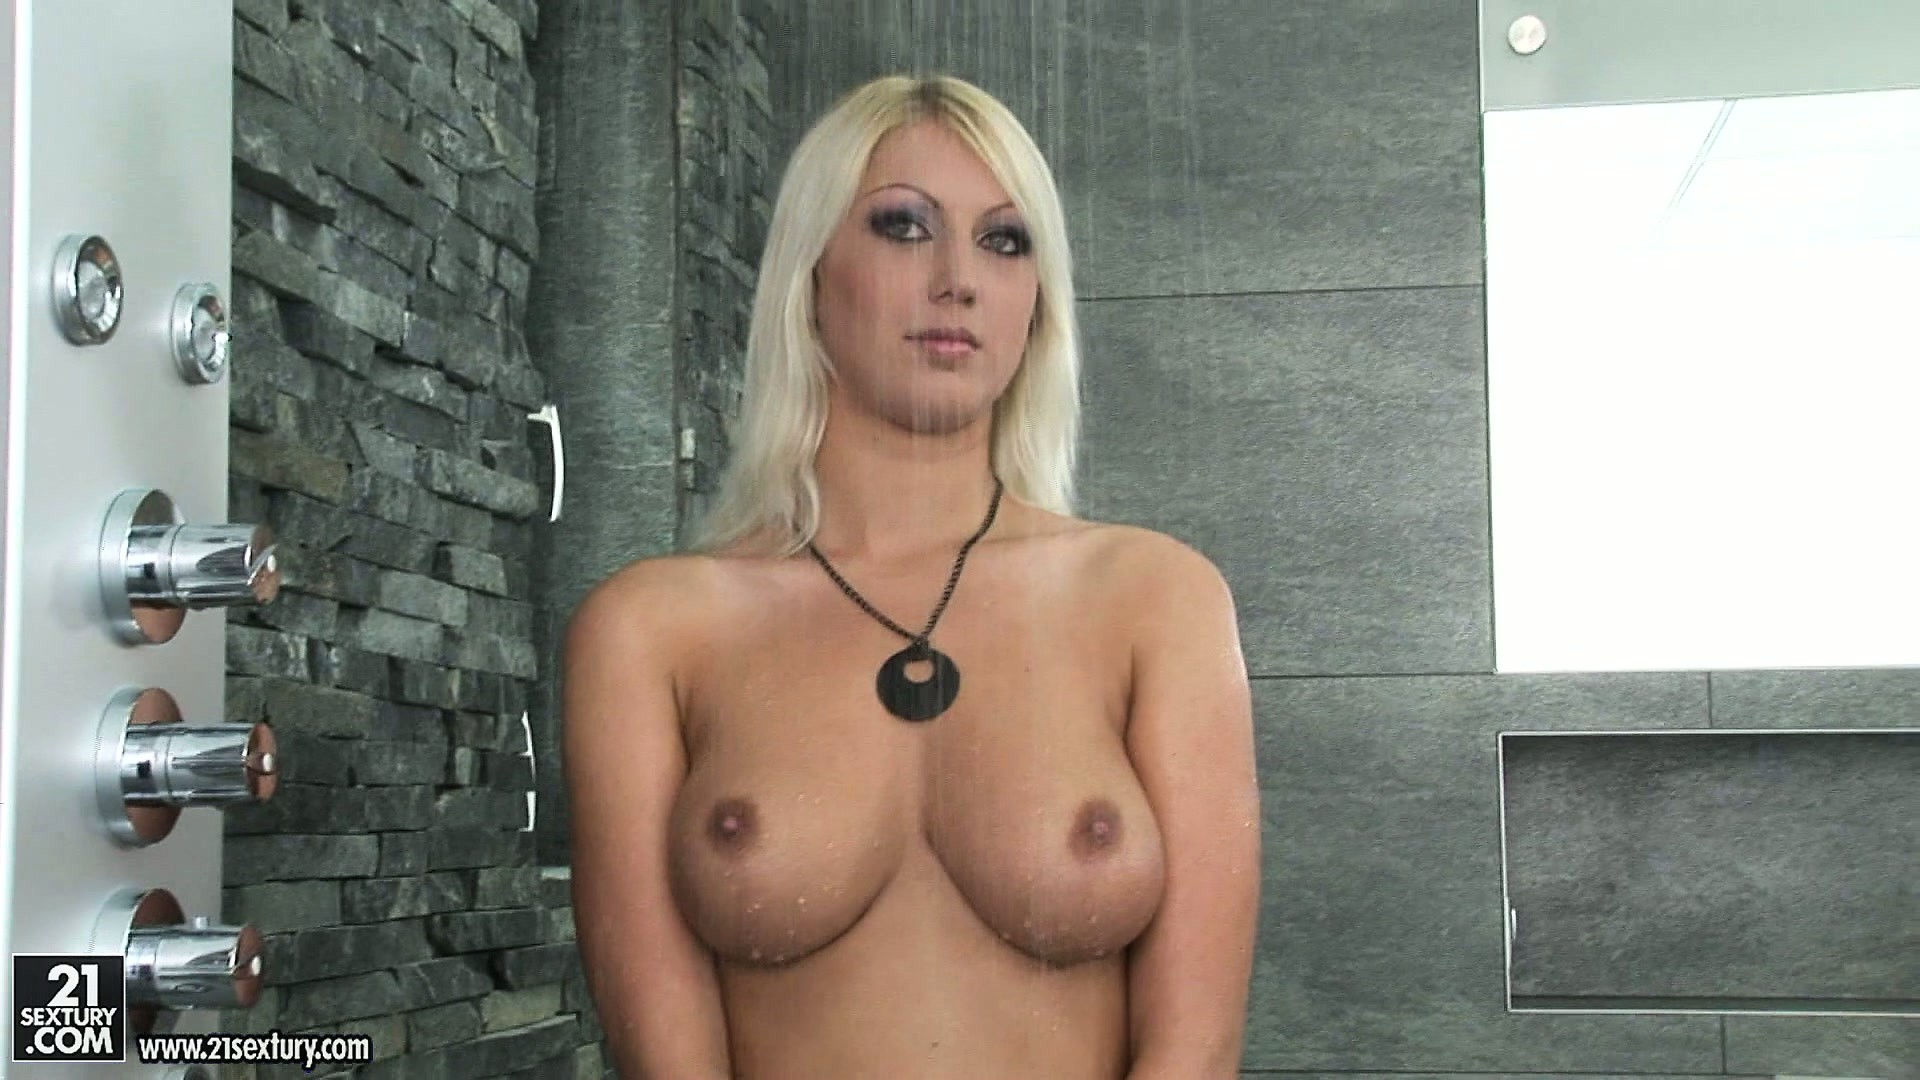 Sex Movie of Gorgeous Blonde Babe Takes A Shower After A Tough Day Making Porn